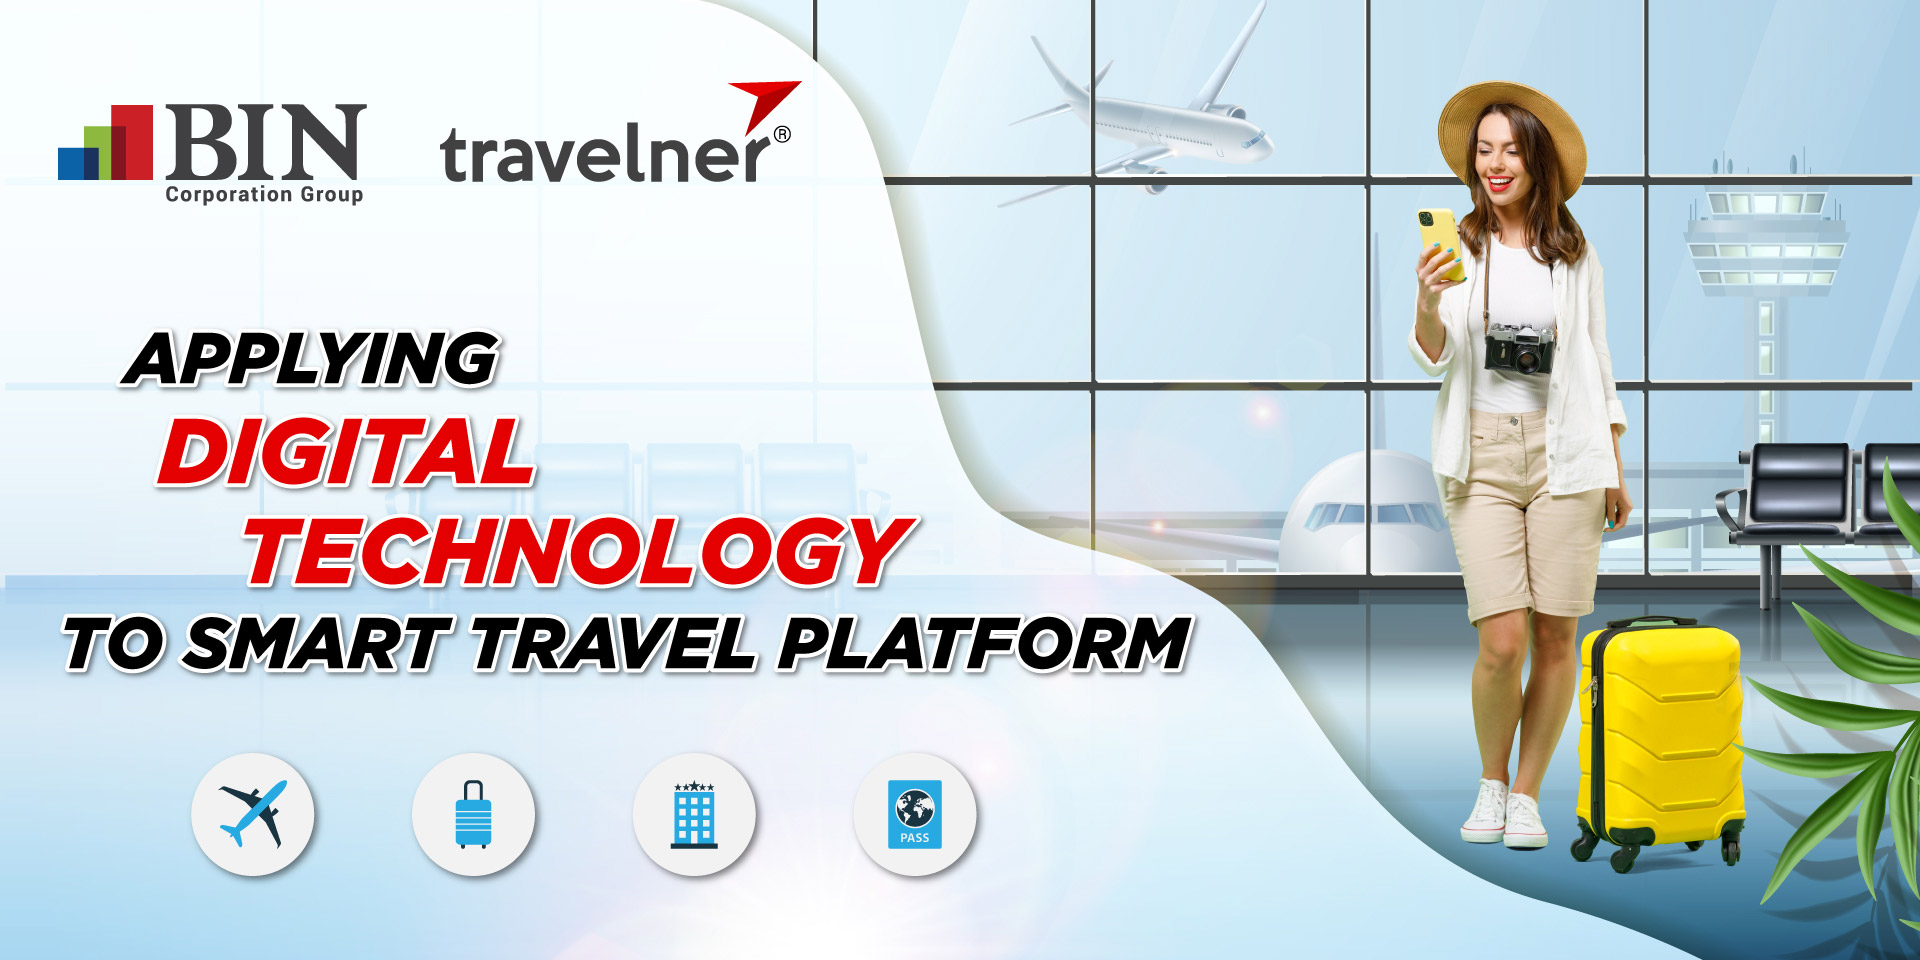 Travelner uses digital technology to create a smart and sustainable tourism platform